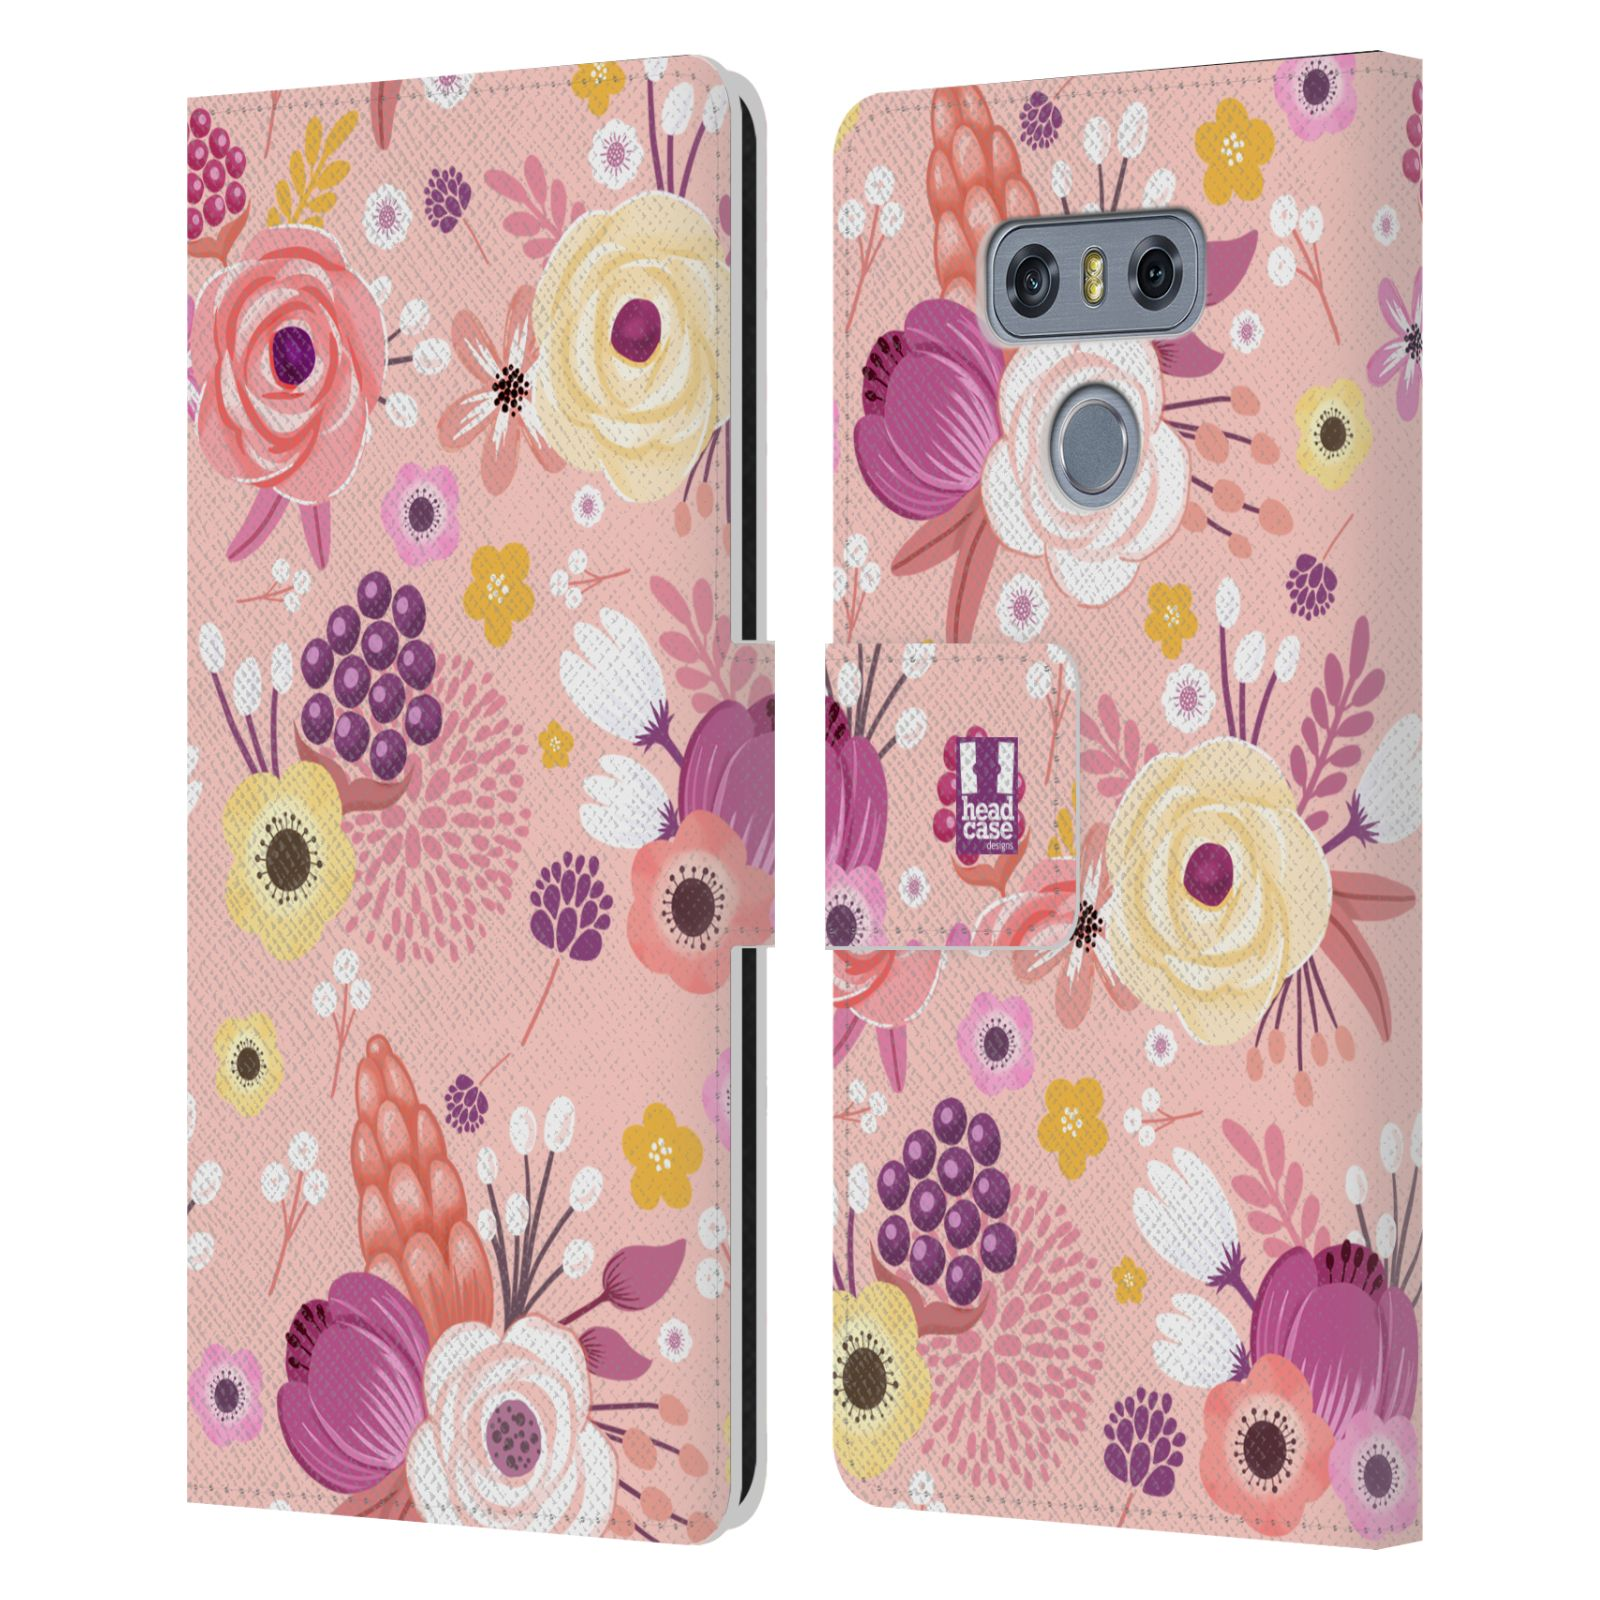 HEAD-CASE-DESIGNS-WHIMSICAL-FLOWERS-LEATHER-BOOK-WALLET-CASE-COVER-FOR-LG-G6